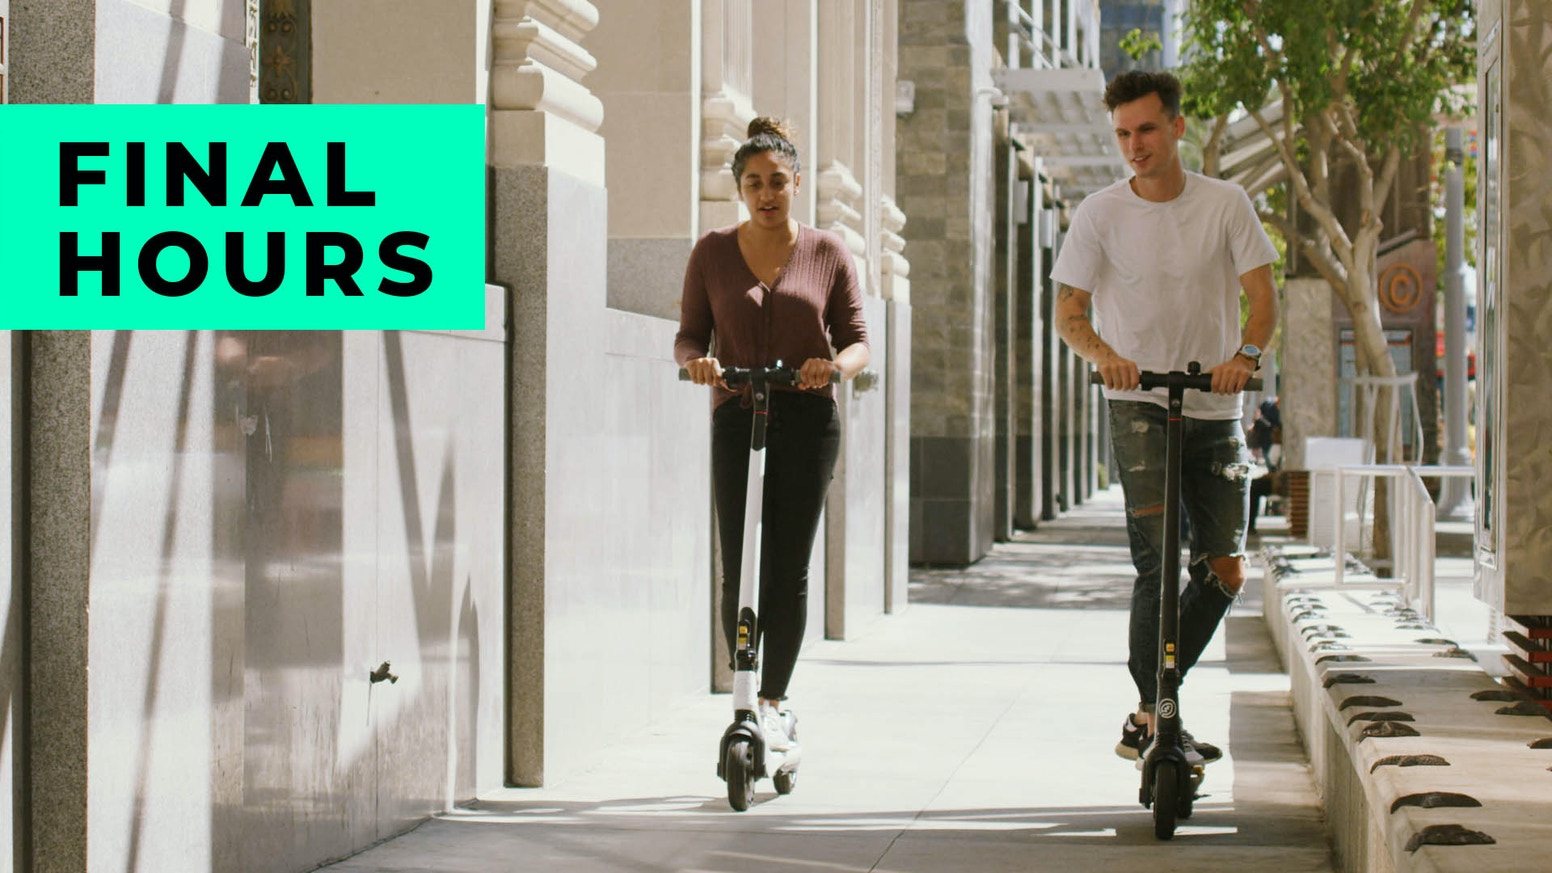 The electric scooter designed with experience and engineered for peace of mind.